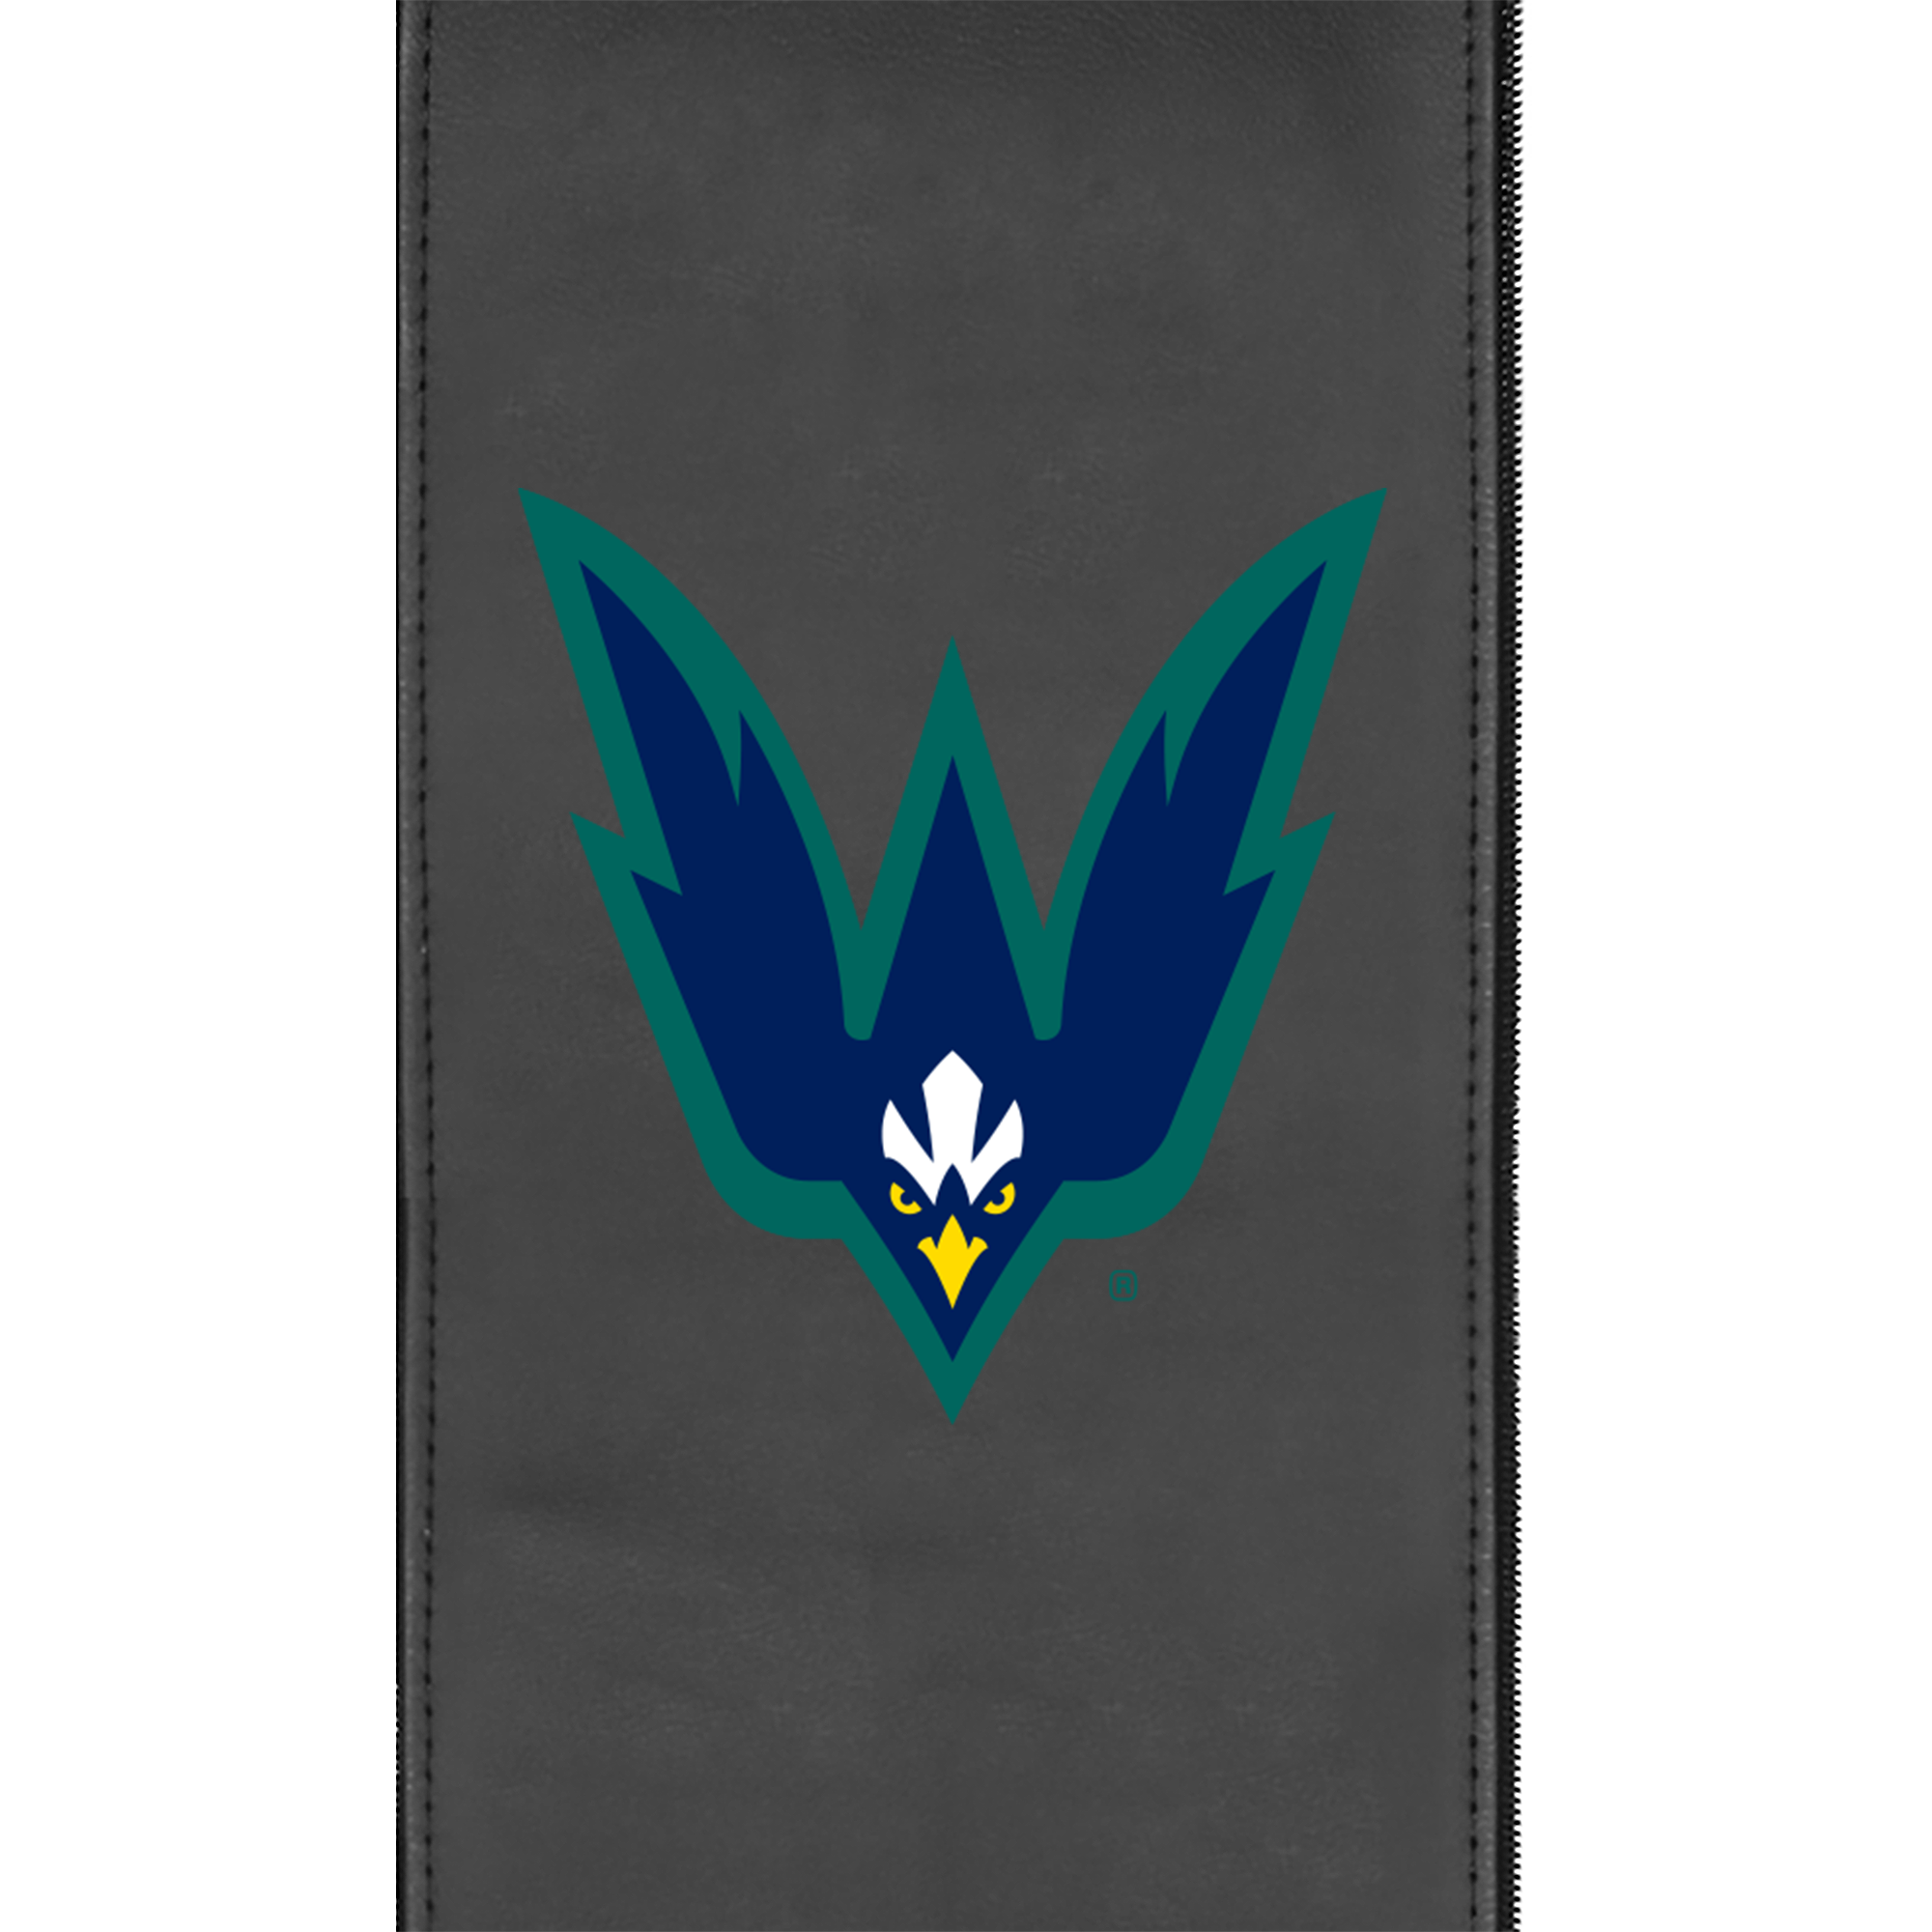 Game Rocker 100 with UNC Wilmington Alternate Logo